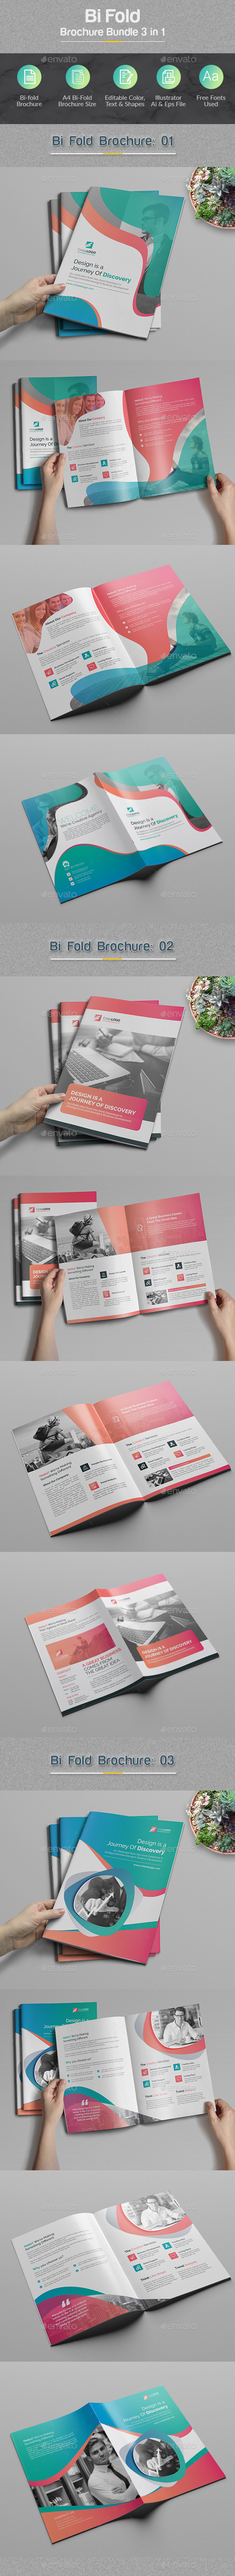 Bi-fold Brochure Bundle 3 in 1 - Corporate Brochures